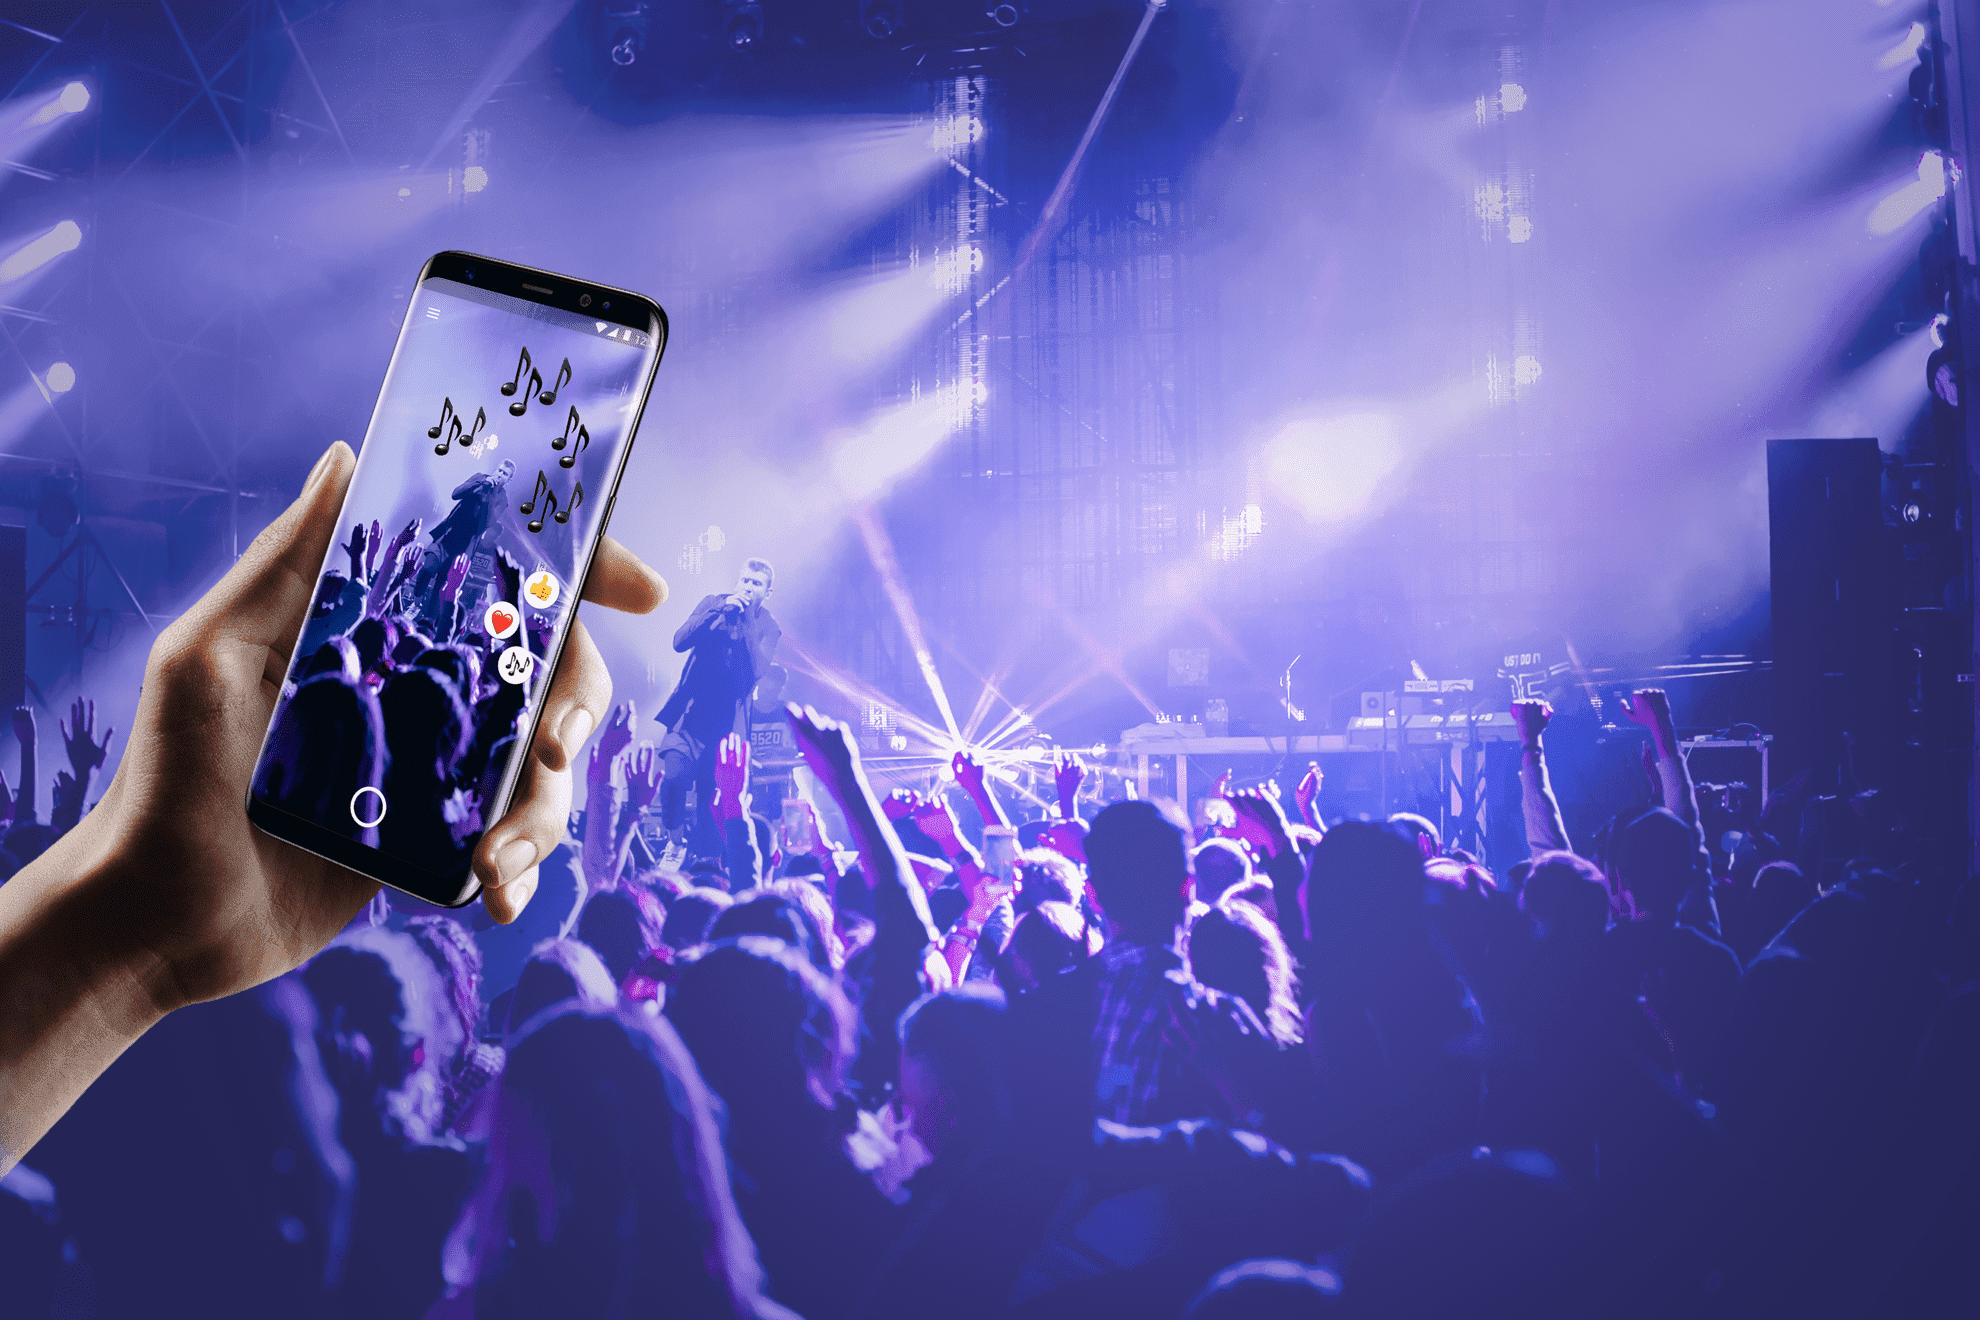 augmented reality for concerts